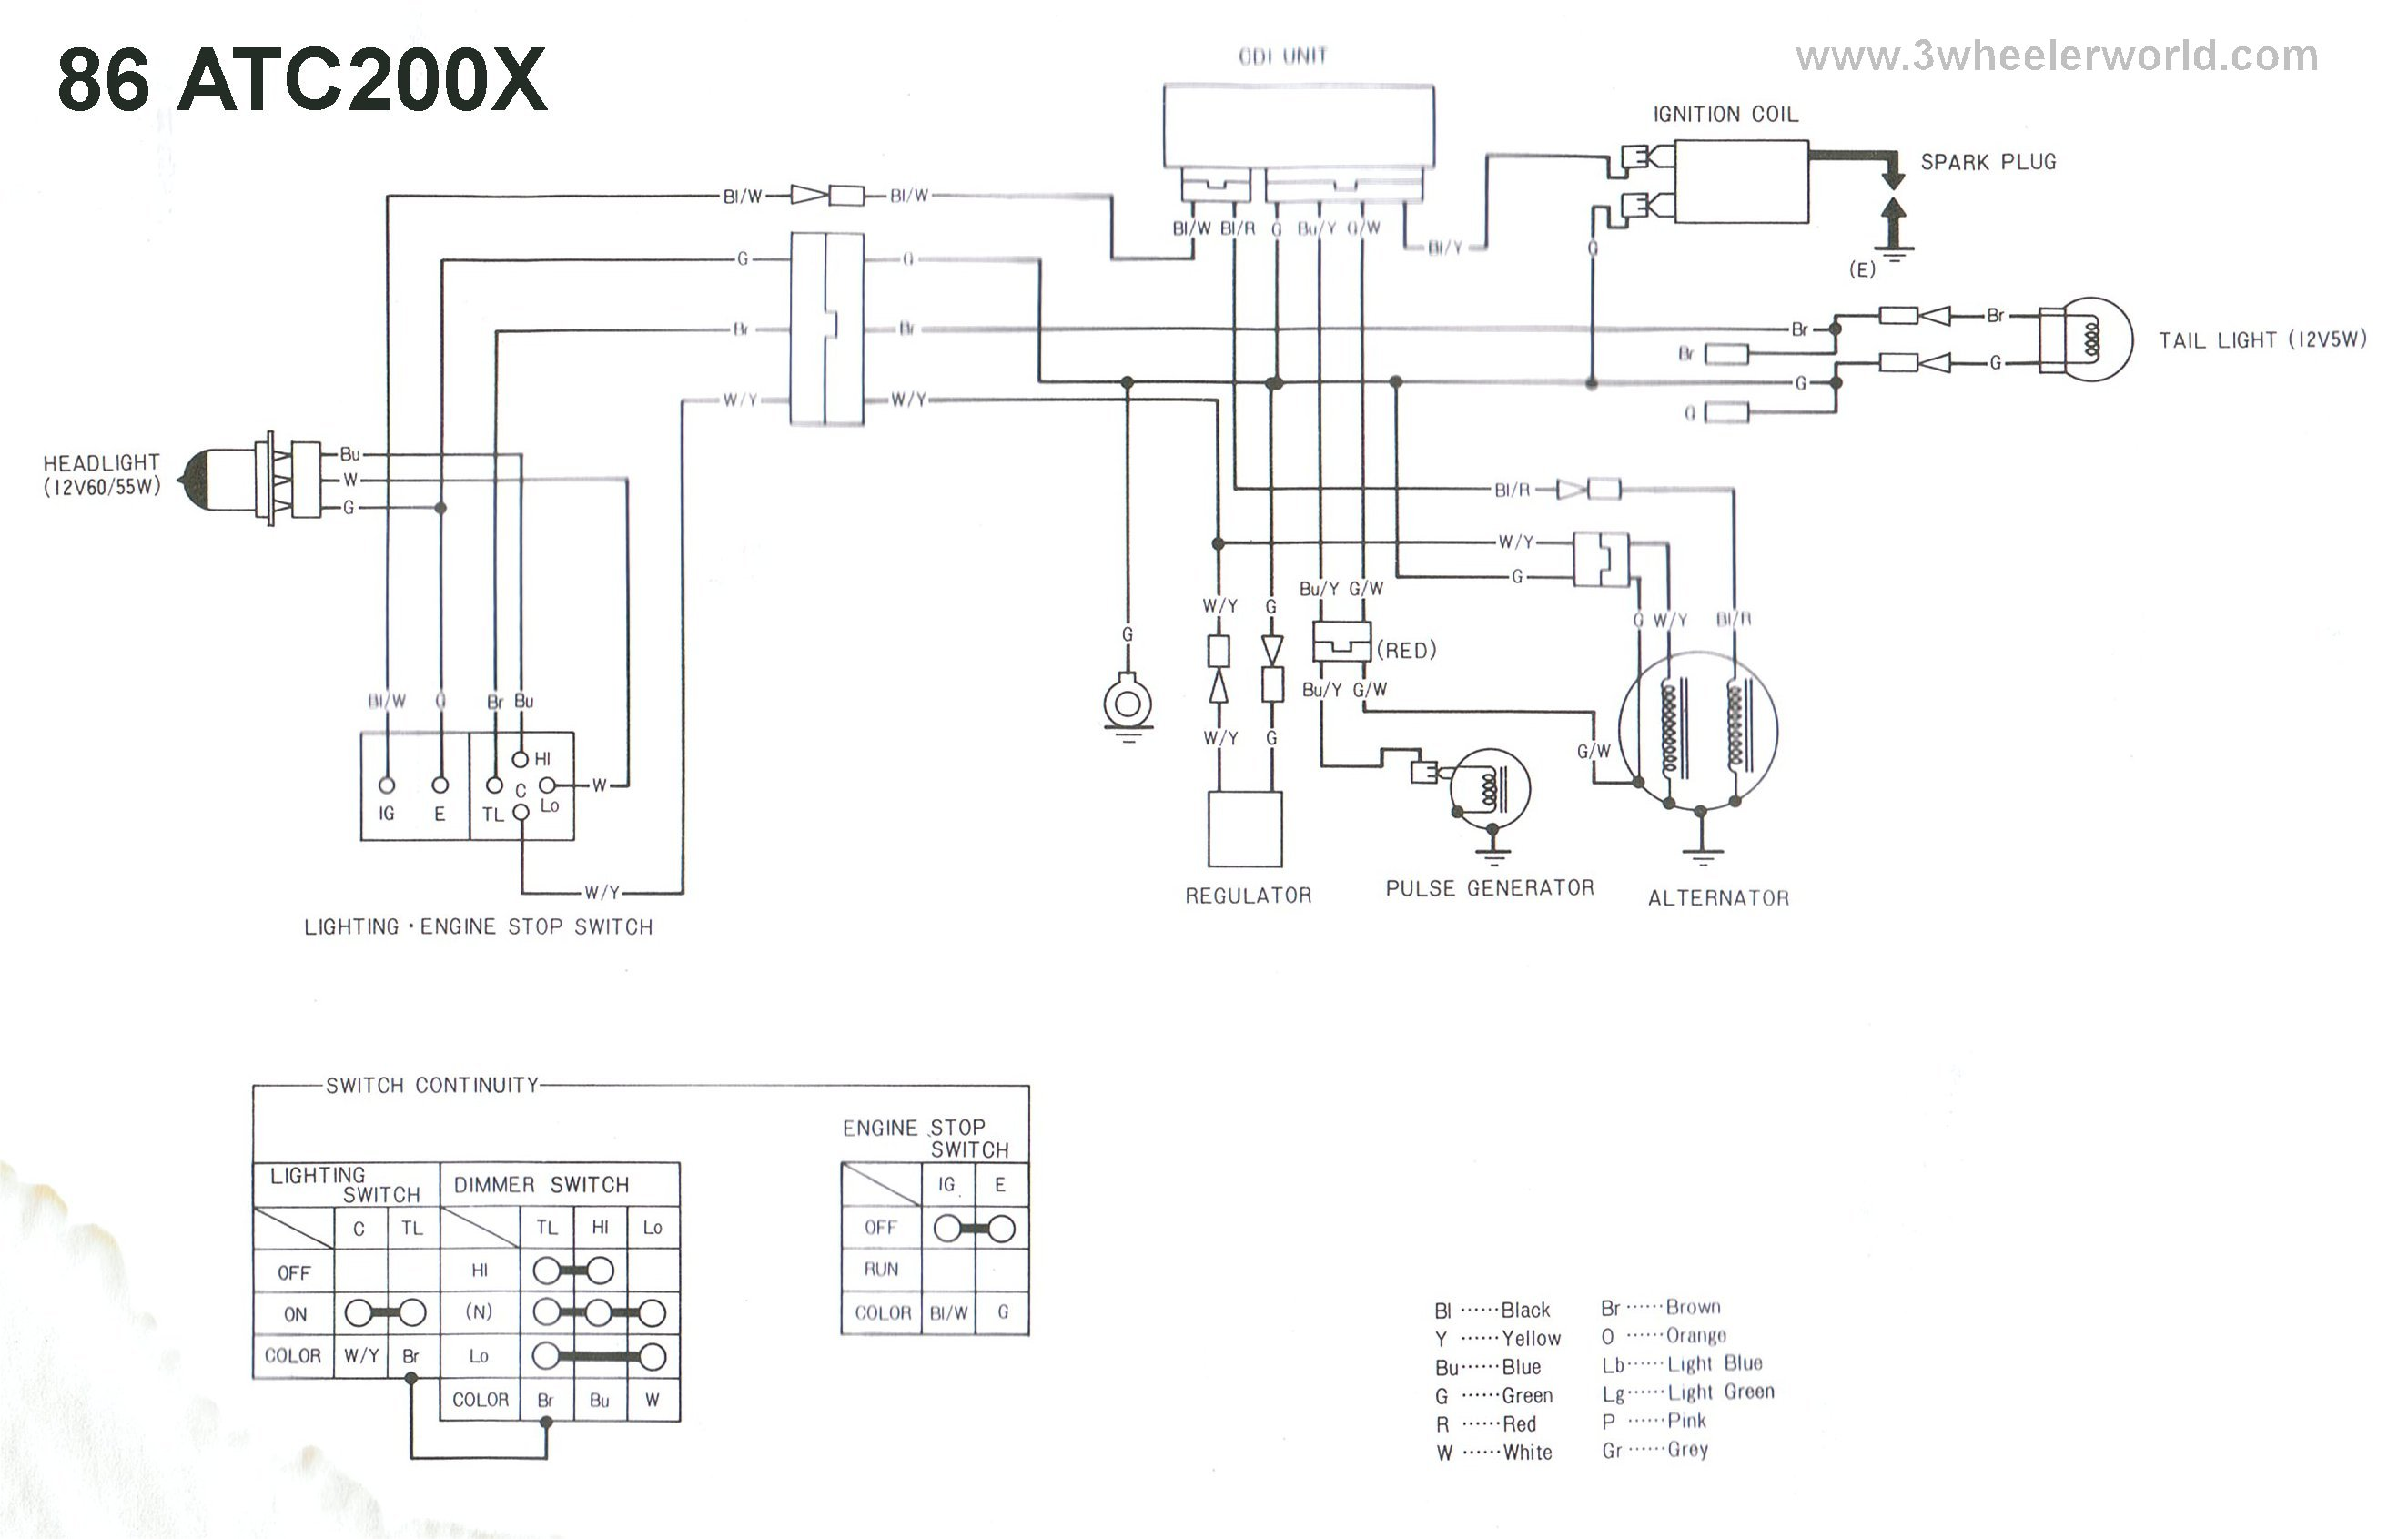 ATC200X 1986 Factory Diagram